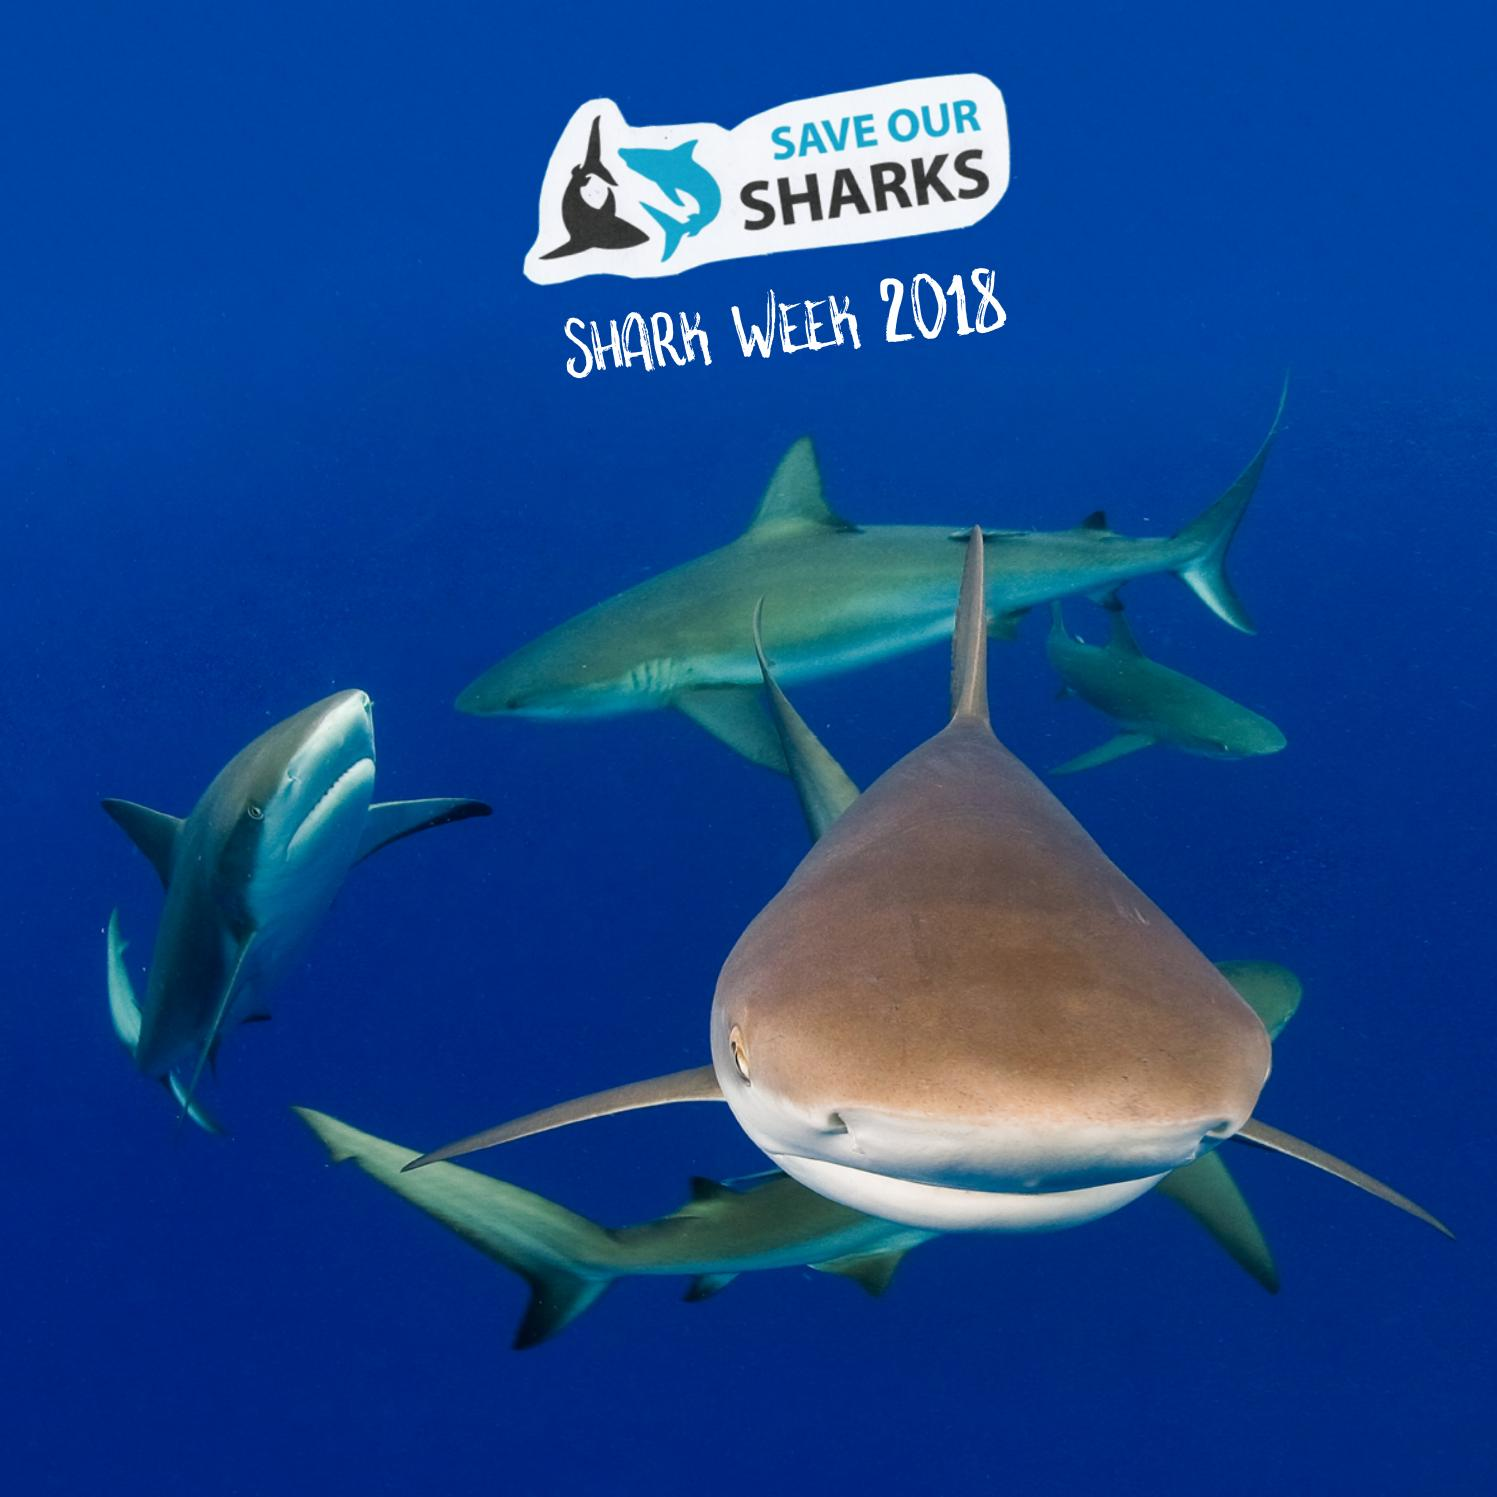 Save Our Sharks - Shark Week 2018 by dcnanature - issuu